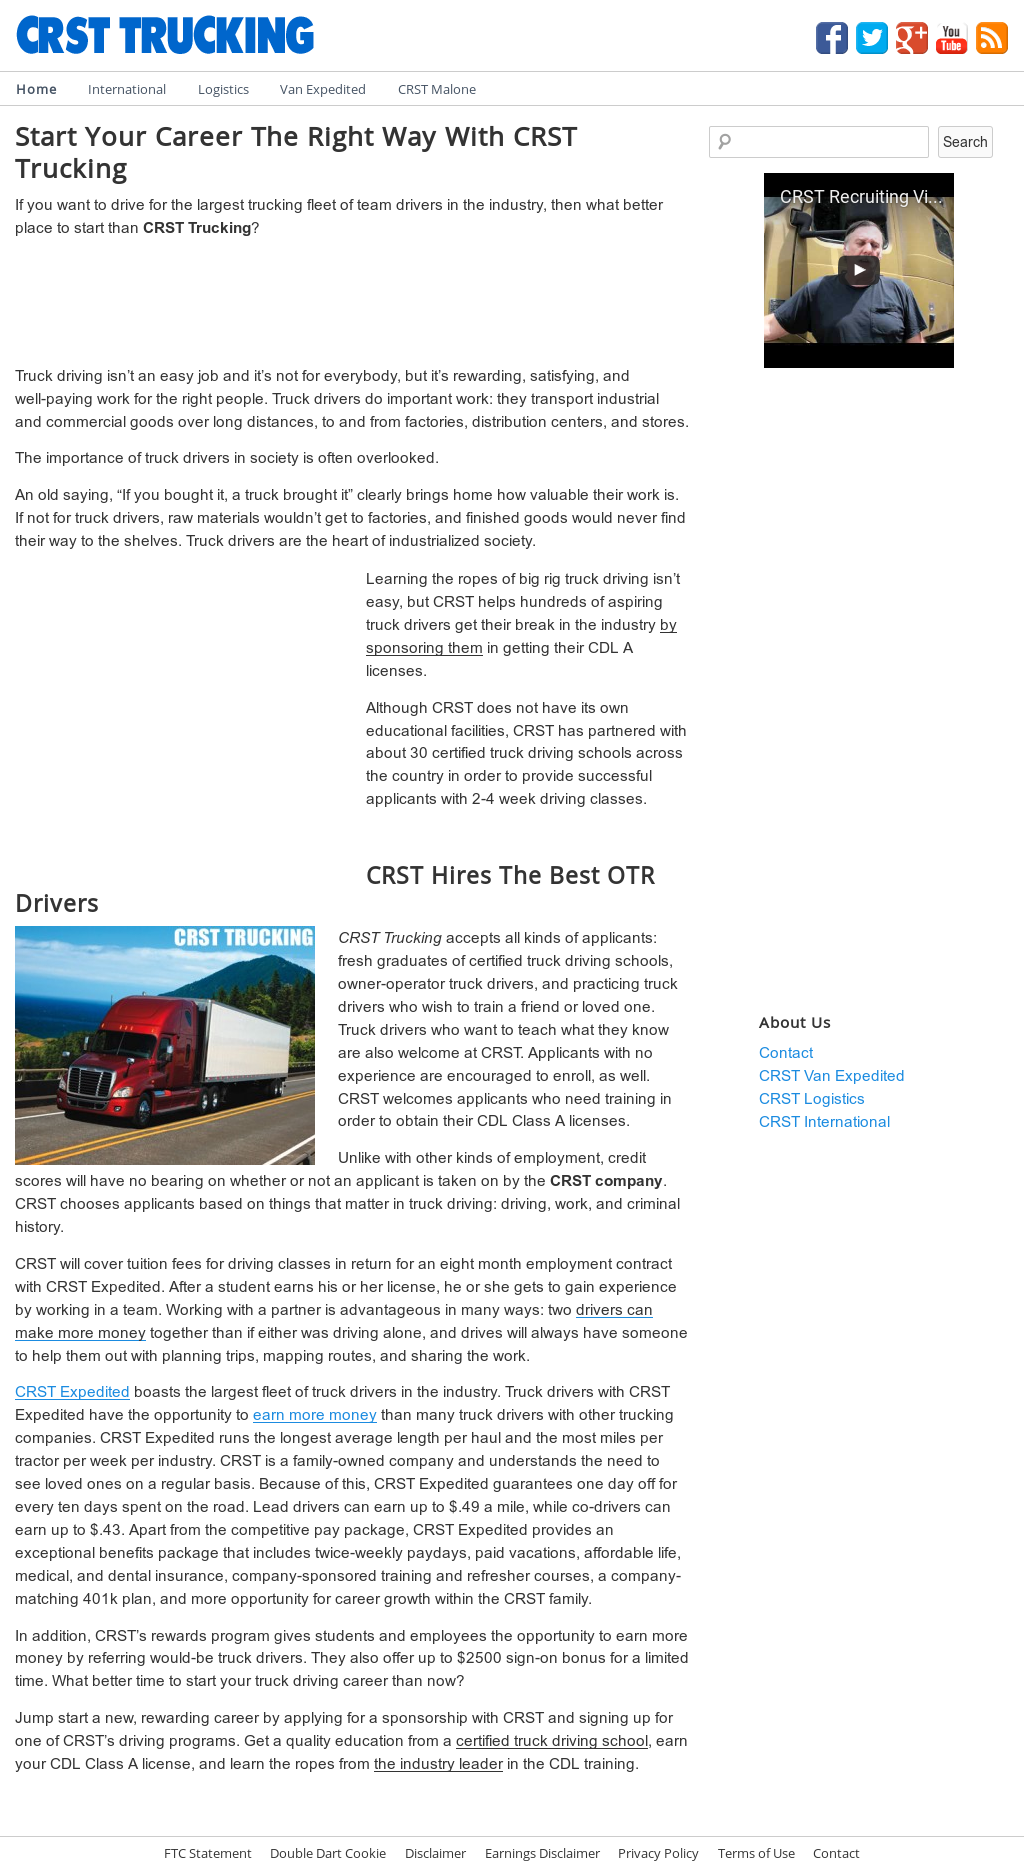 Crst Trucking Competitors, Revenue and Employees - Owler